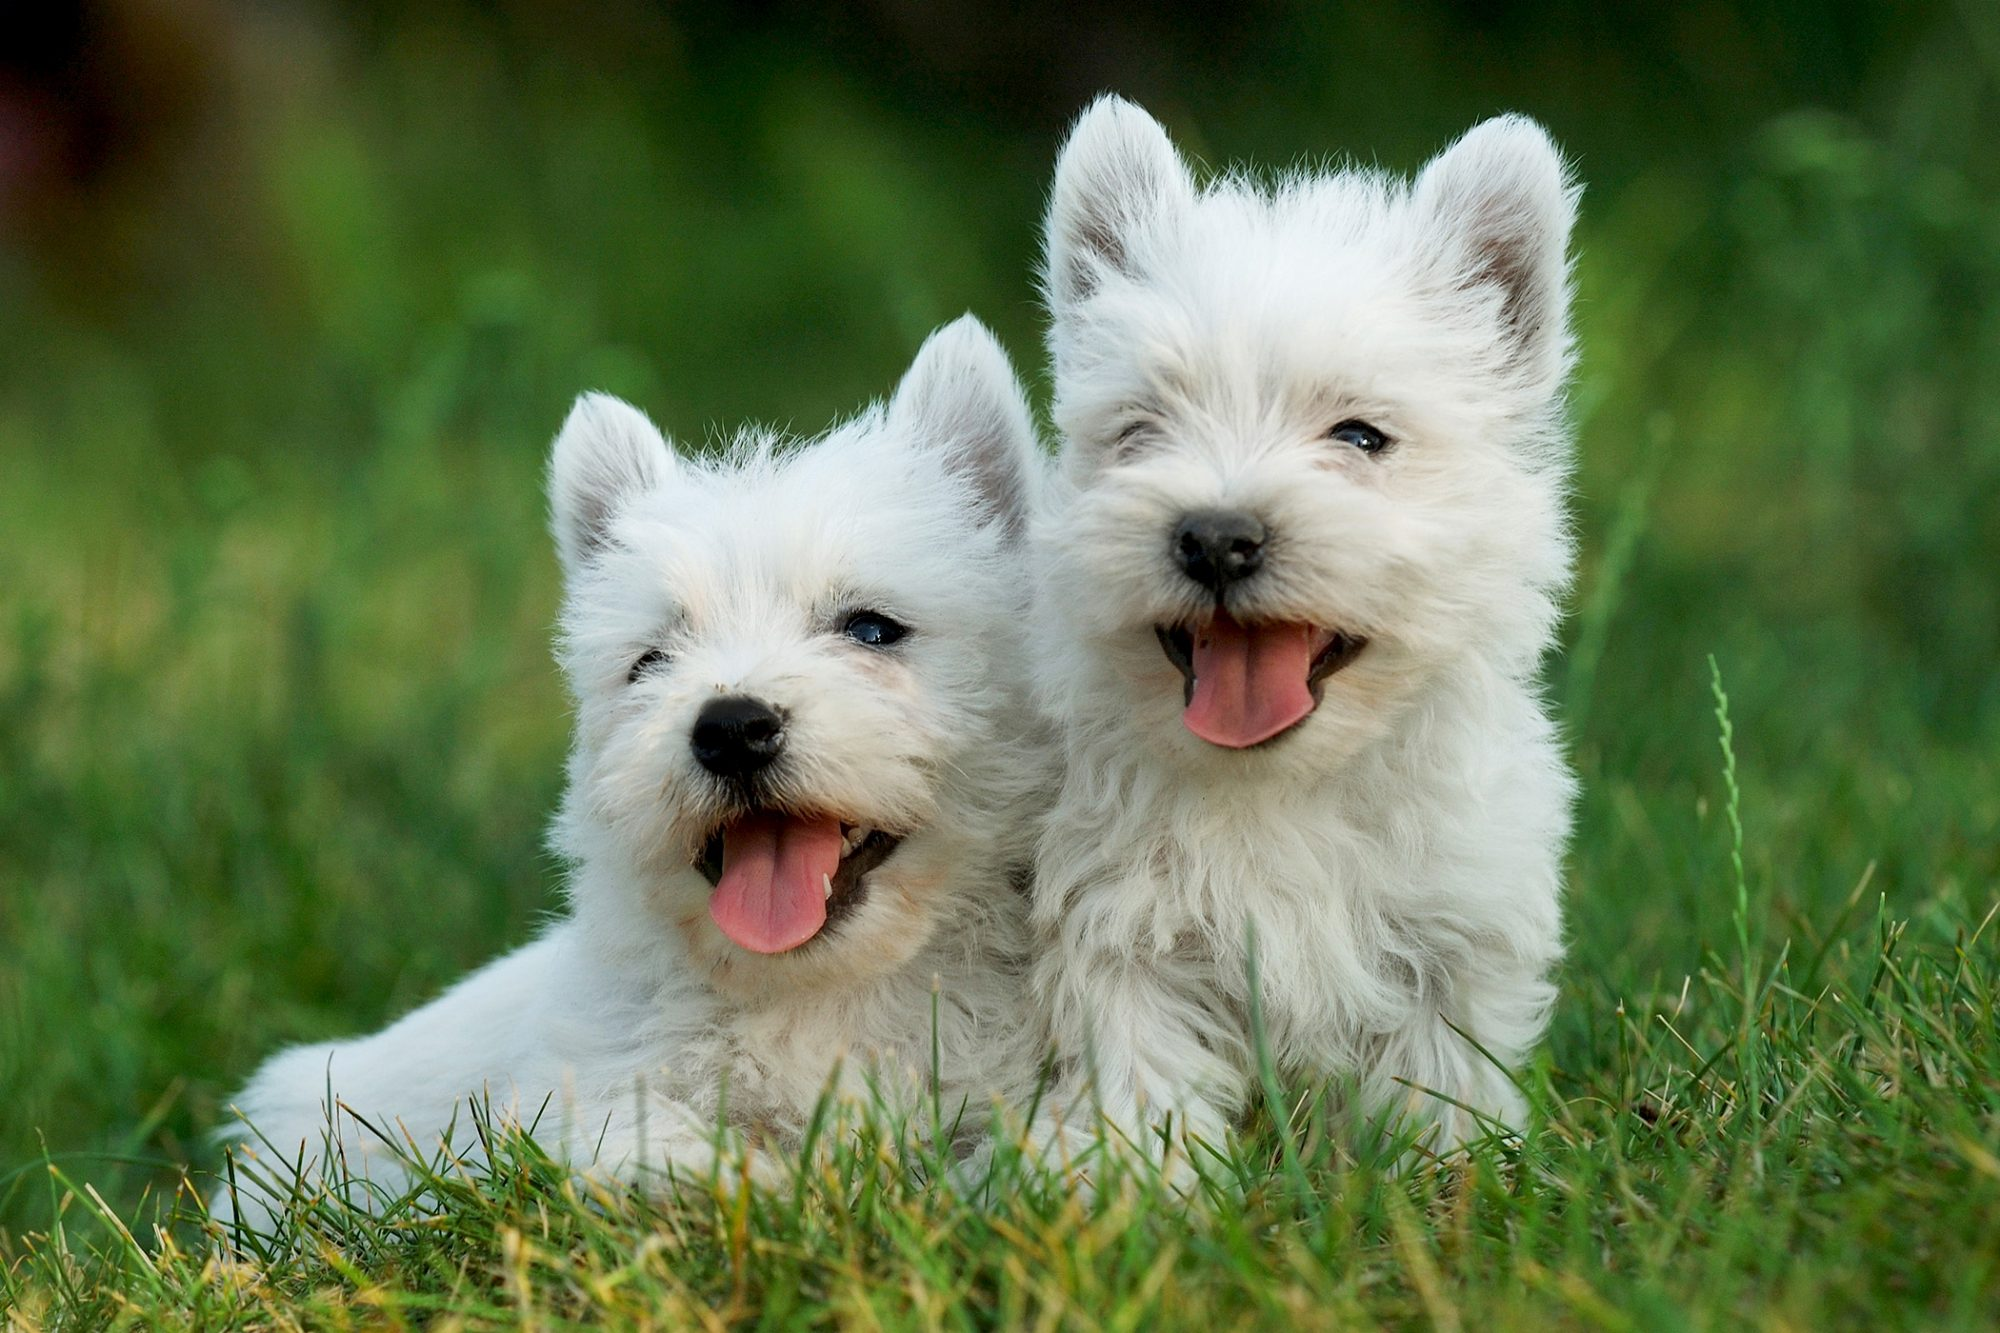 Pair of west highland white terrier puppies laying together in grass